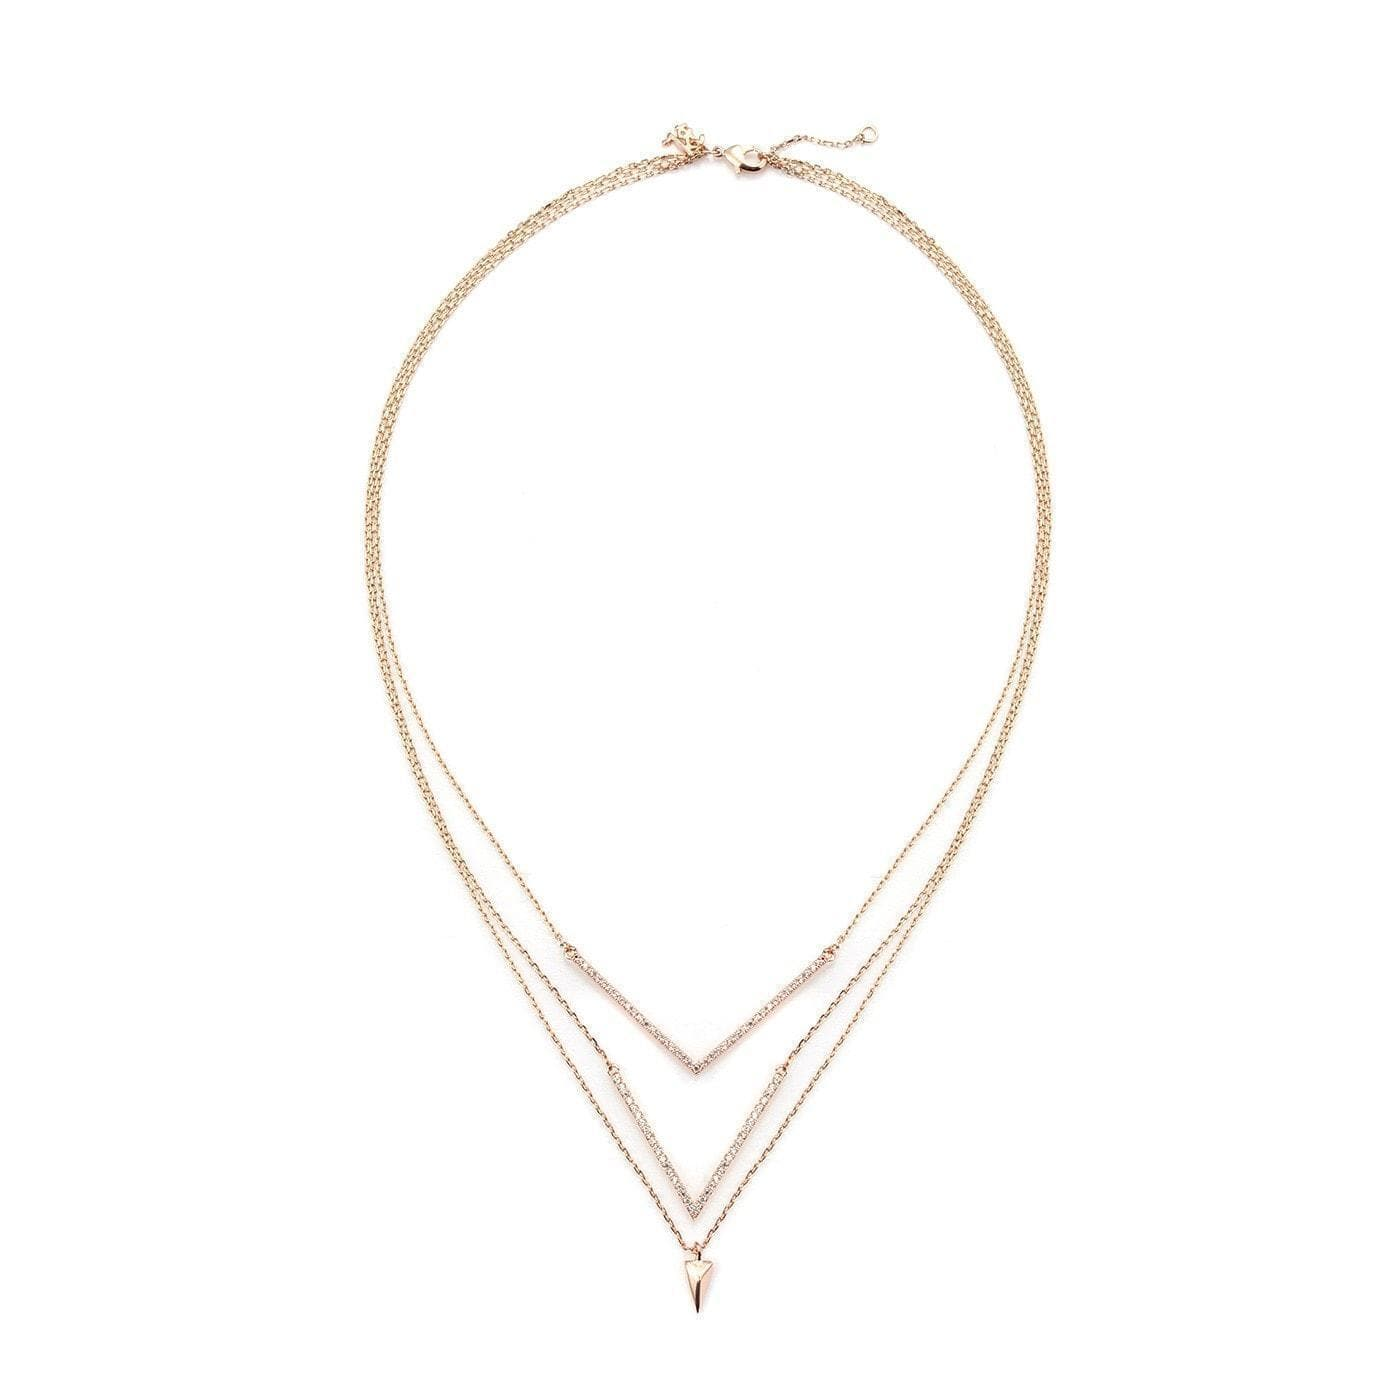 Absolute Elegance Layered Elite Neckpiece-Blinglane